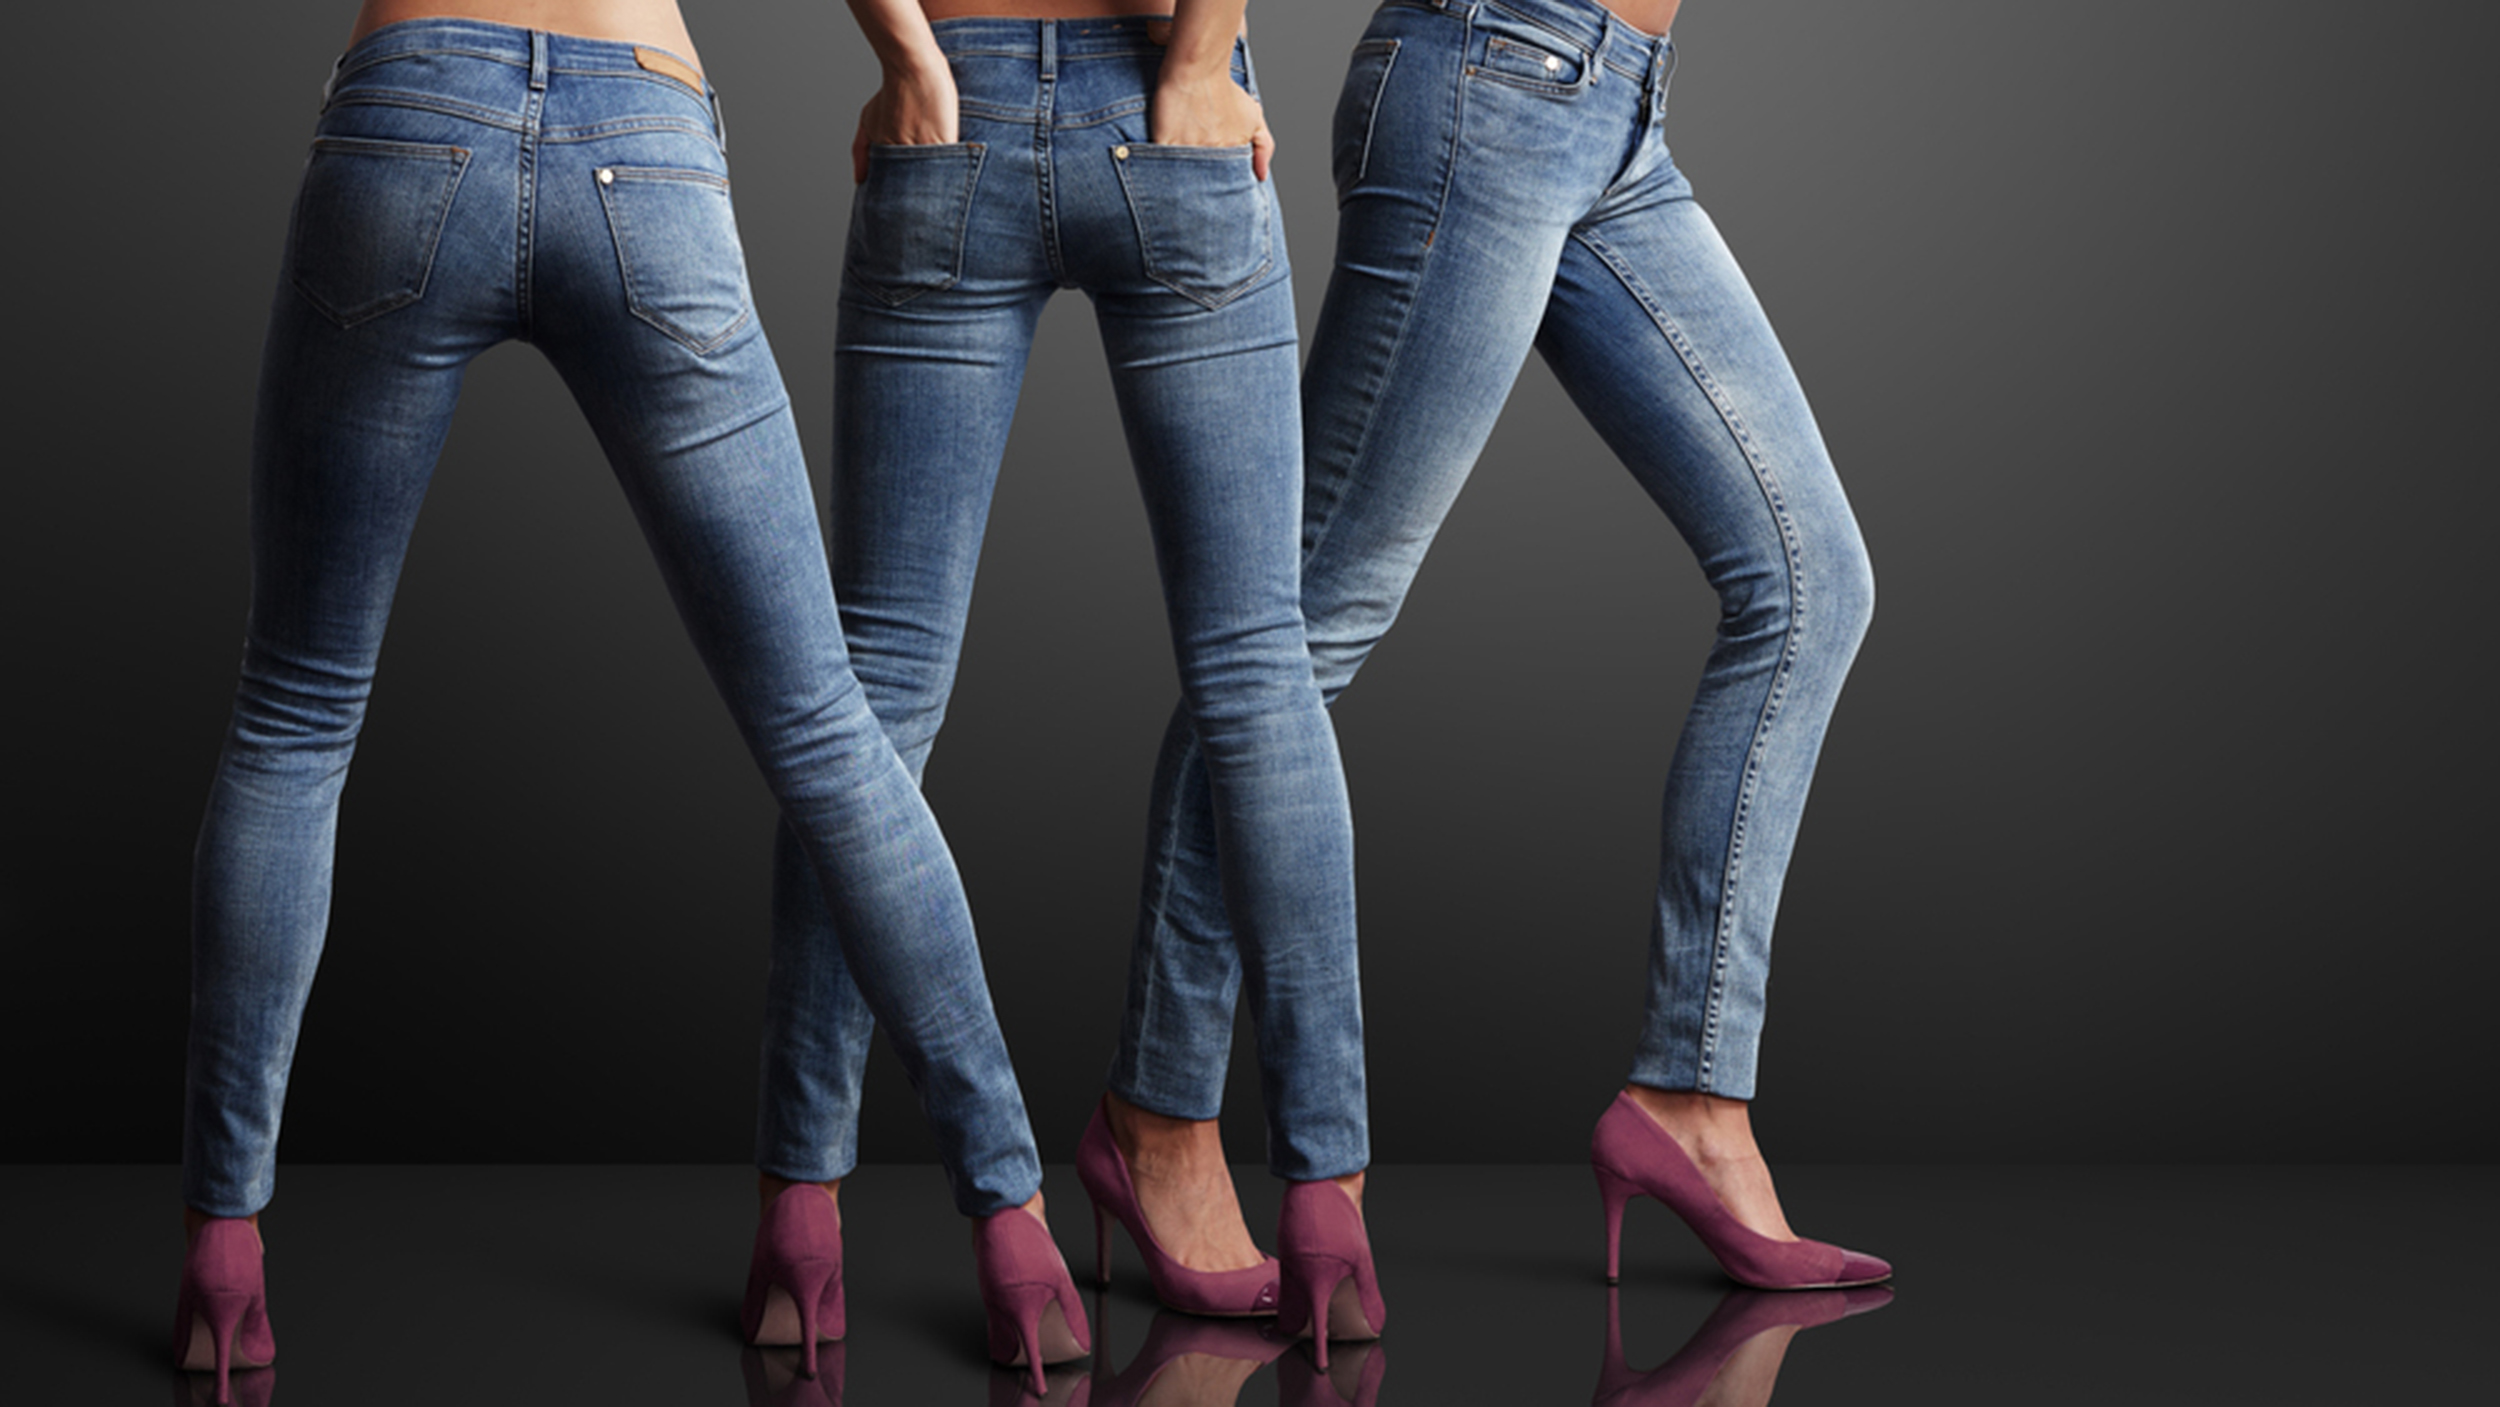 Woman hospitalized after her skinny jeans caused muscle damage ...